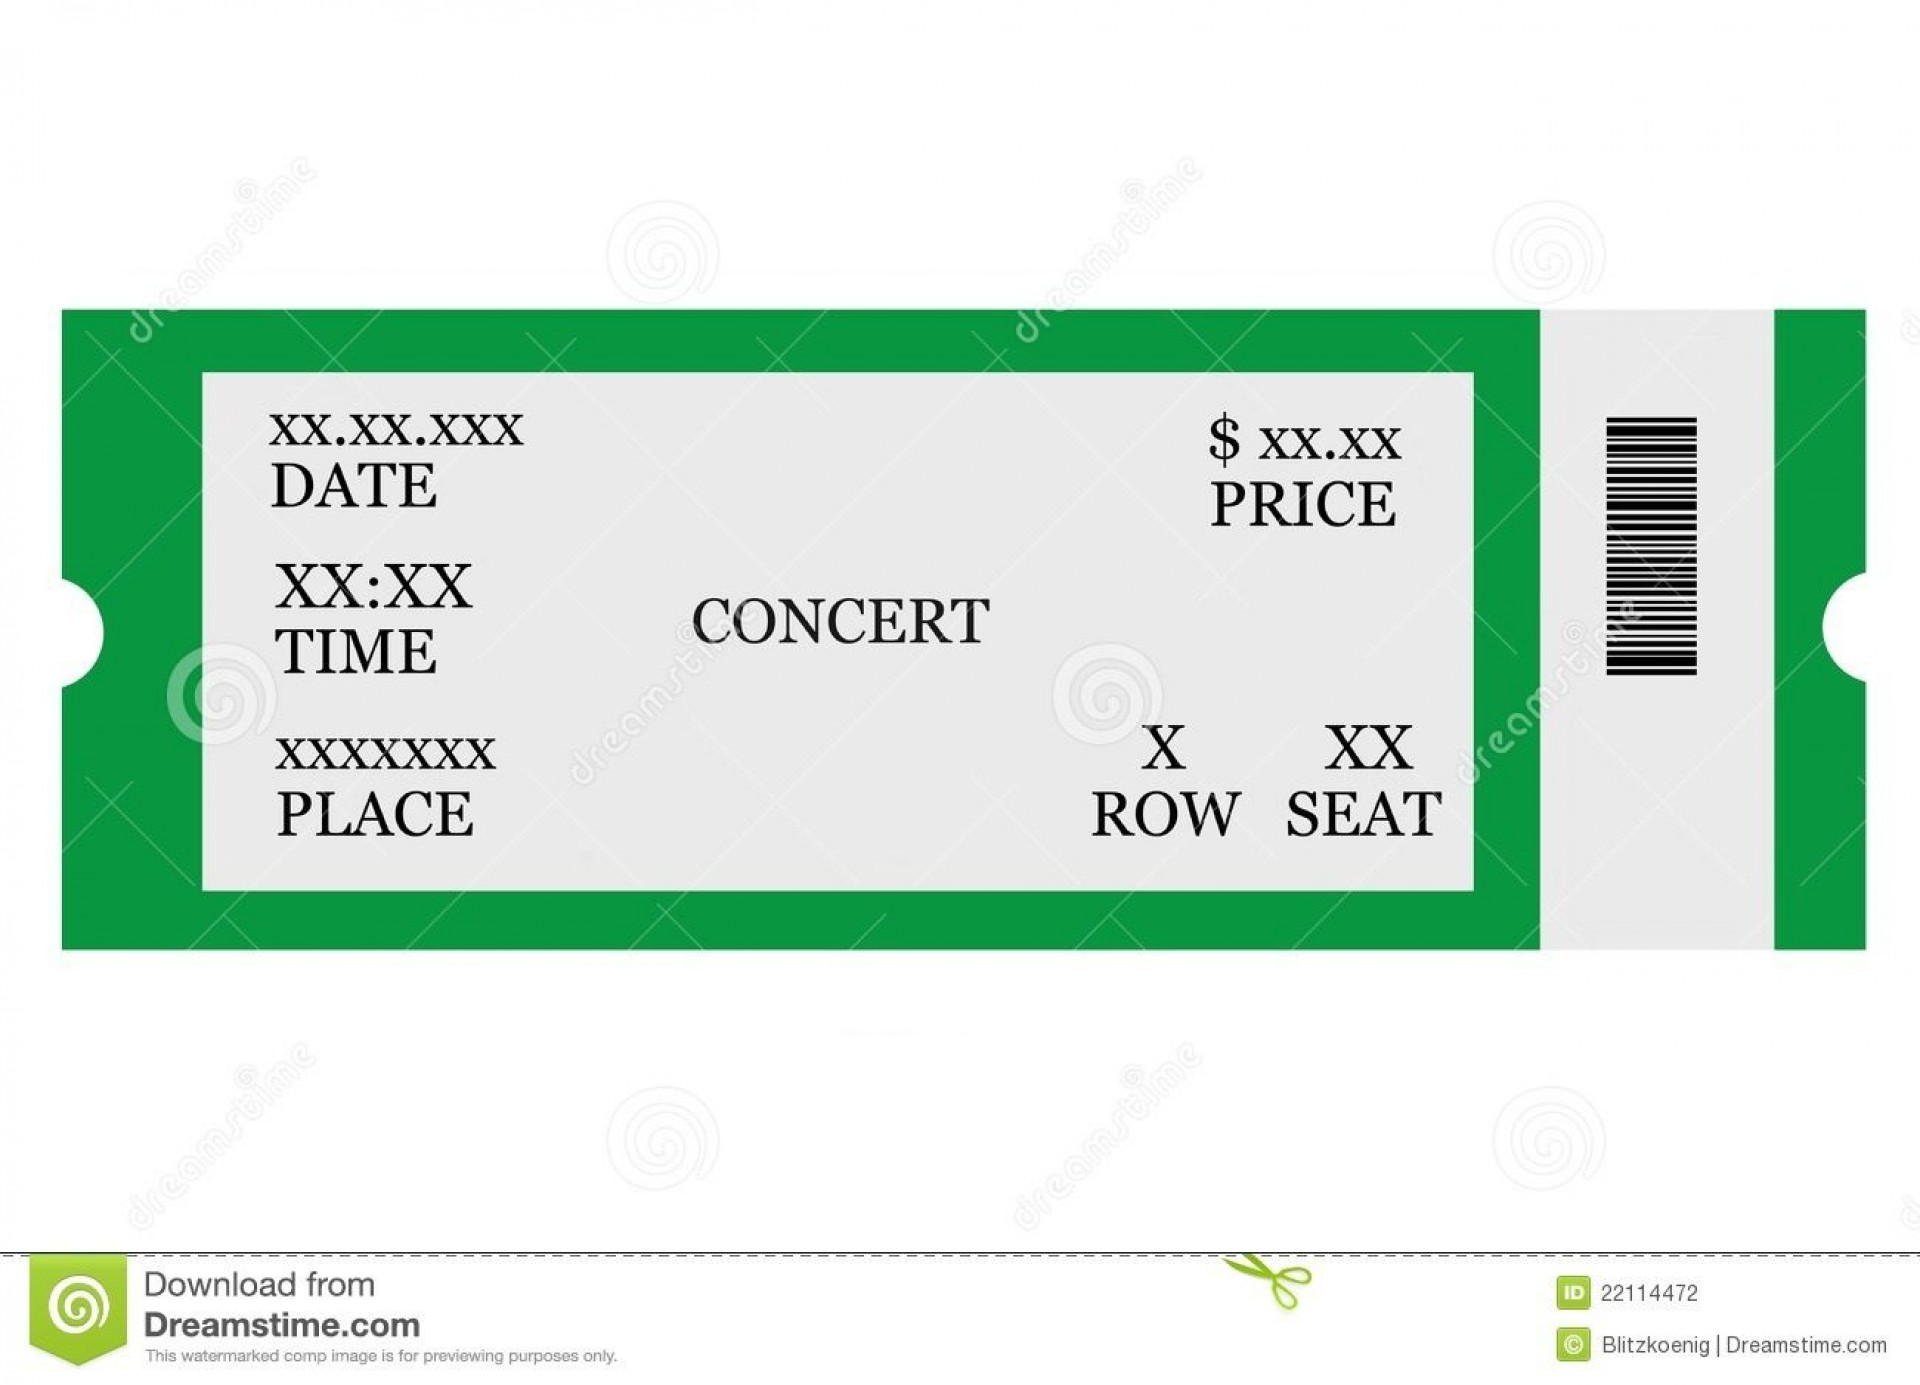 004 Fascinating Free Event Ticket Template Printable Design 1920